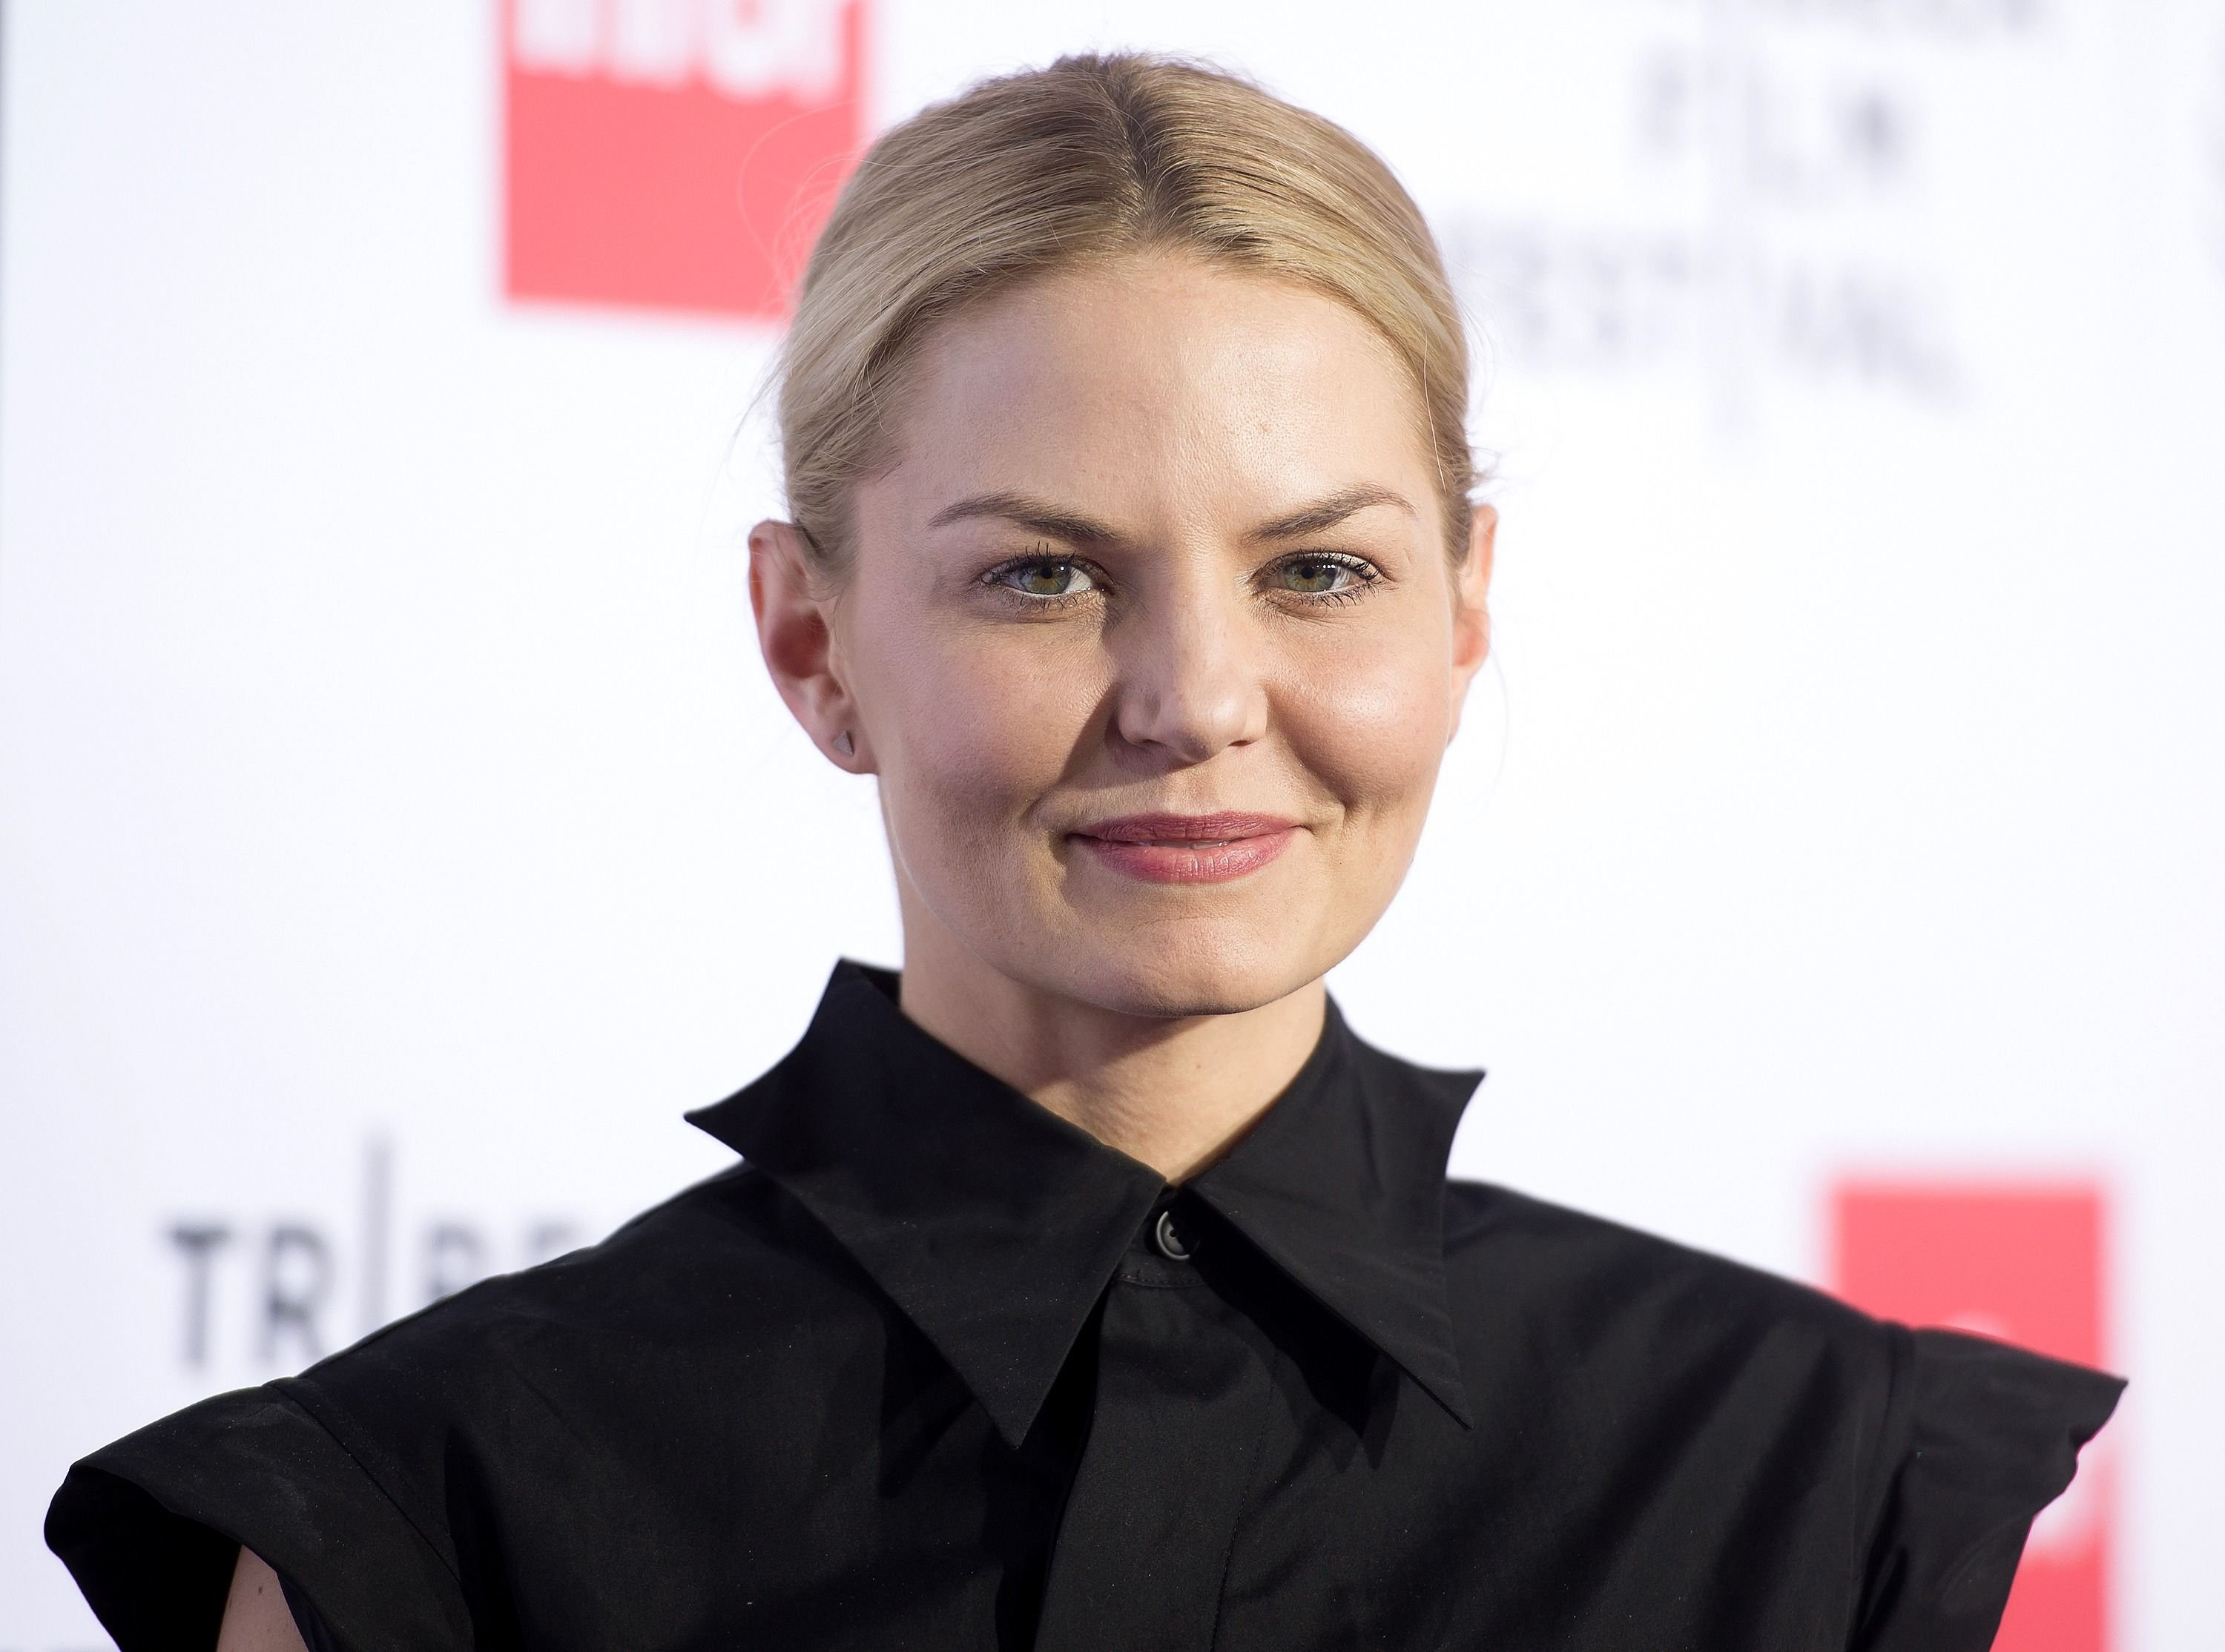 """Actress Jennifer Morrison at the """"Taxi Driver"""" 40th Anniversary Screening during the 2016 Tribeca Film Festival at Beacon Theatre on April 21, 2016   Photo: Getty Images"""